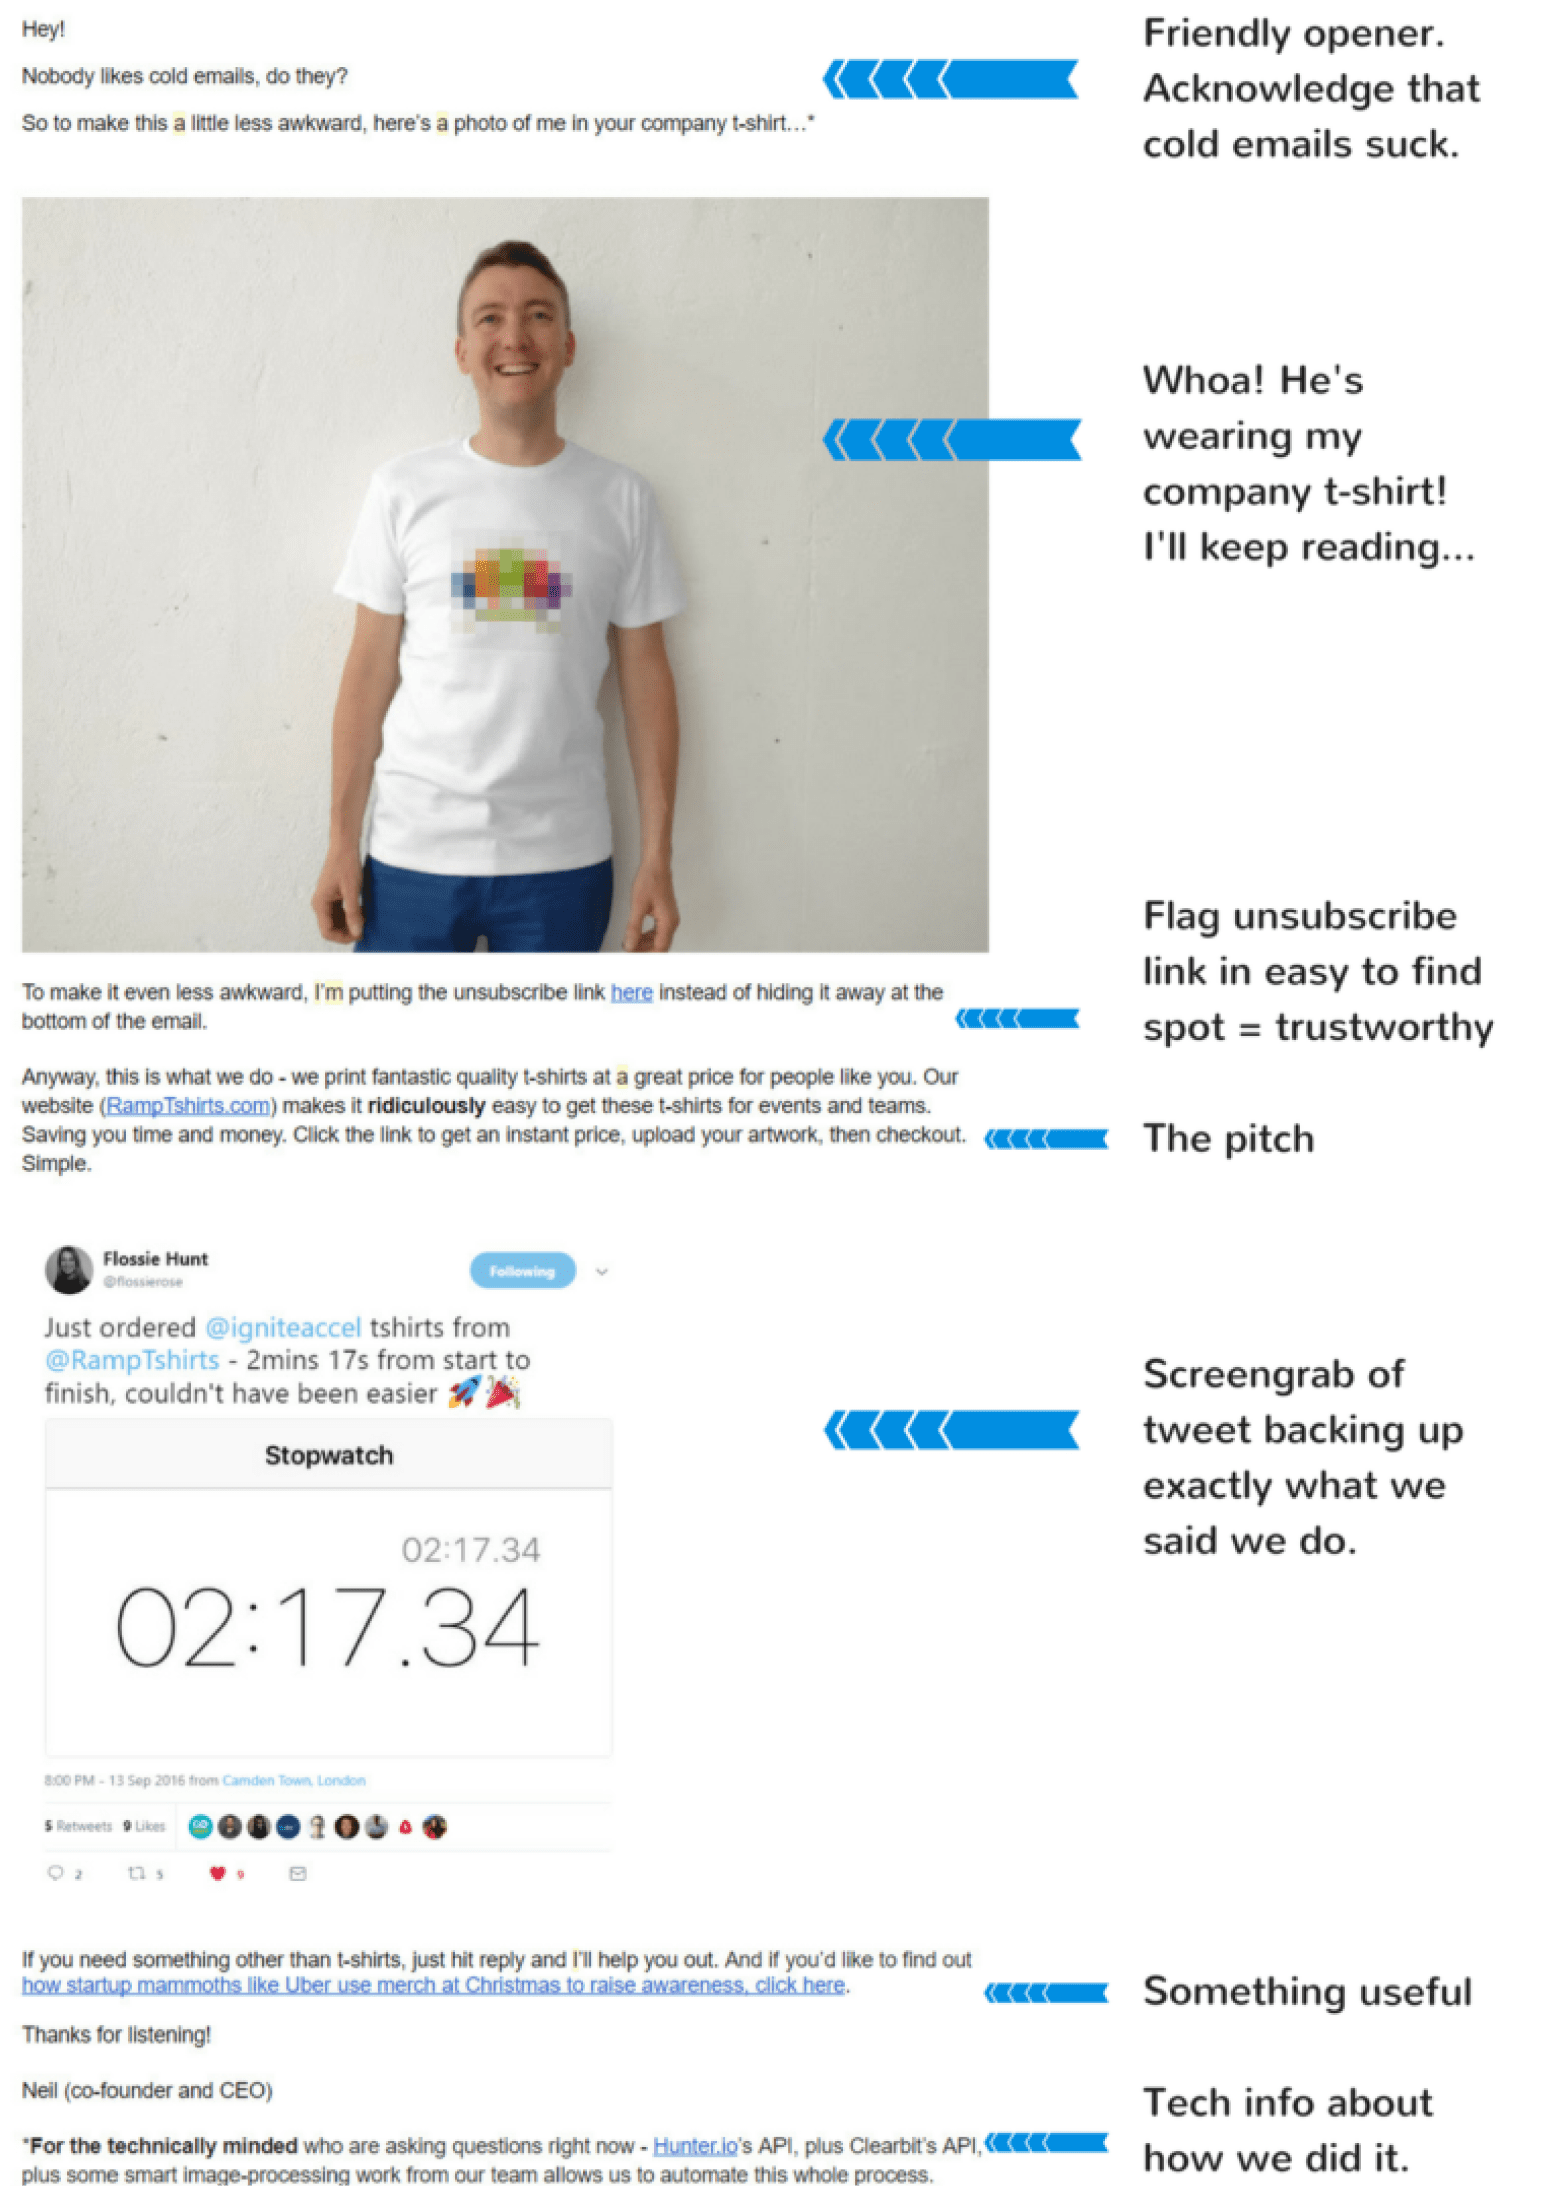 cold emails featuring a photo of Neil wearing each prospect's company t-shirt